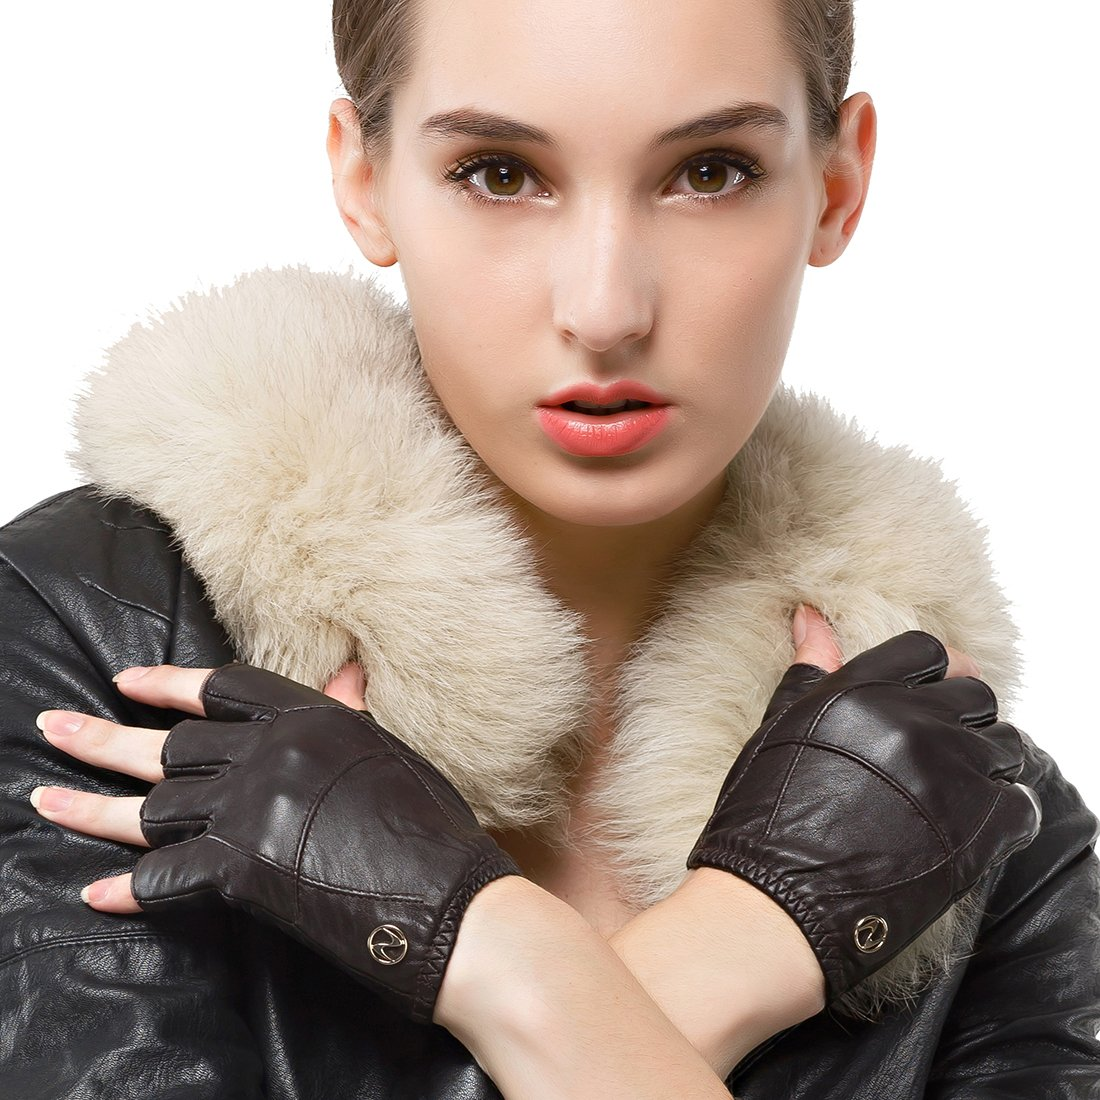 Nappaglo Women's Driving Leather Gloves Half Finger Fingerless Lambskin Leather Fitness Outdoor Shorty Unlined Gloves DBE215